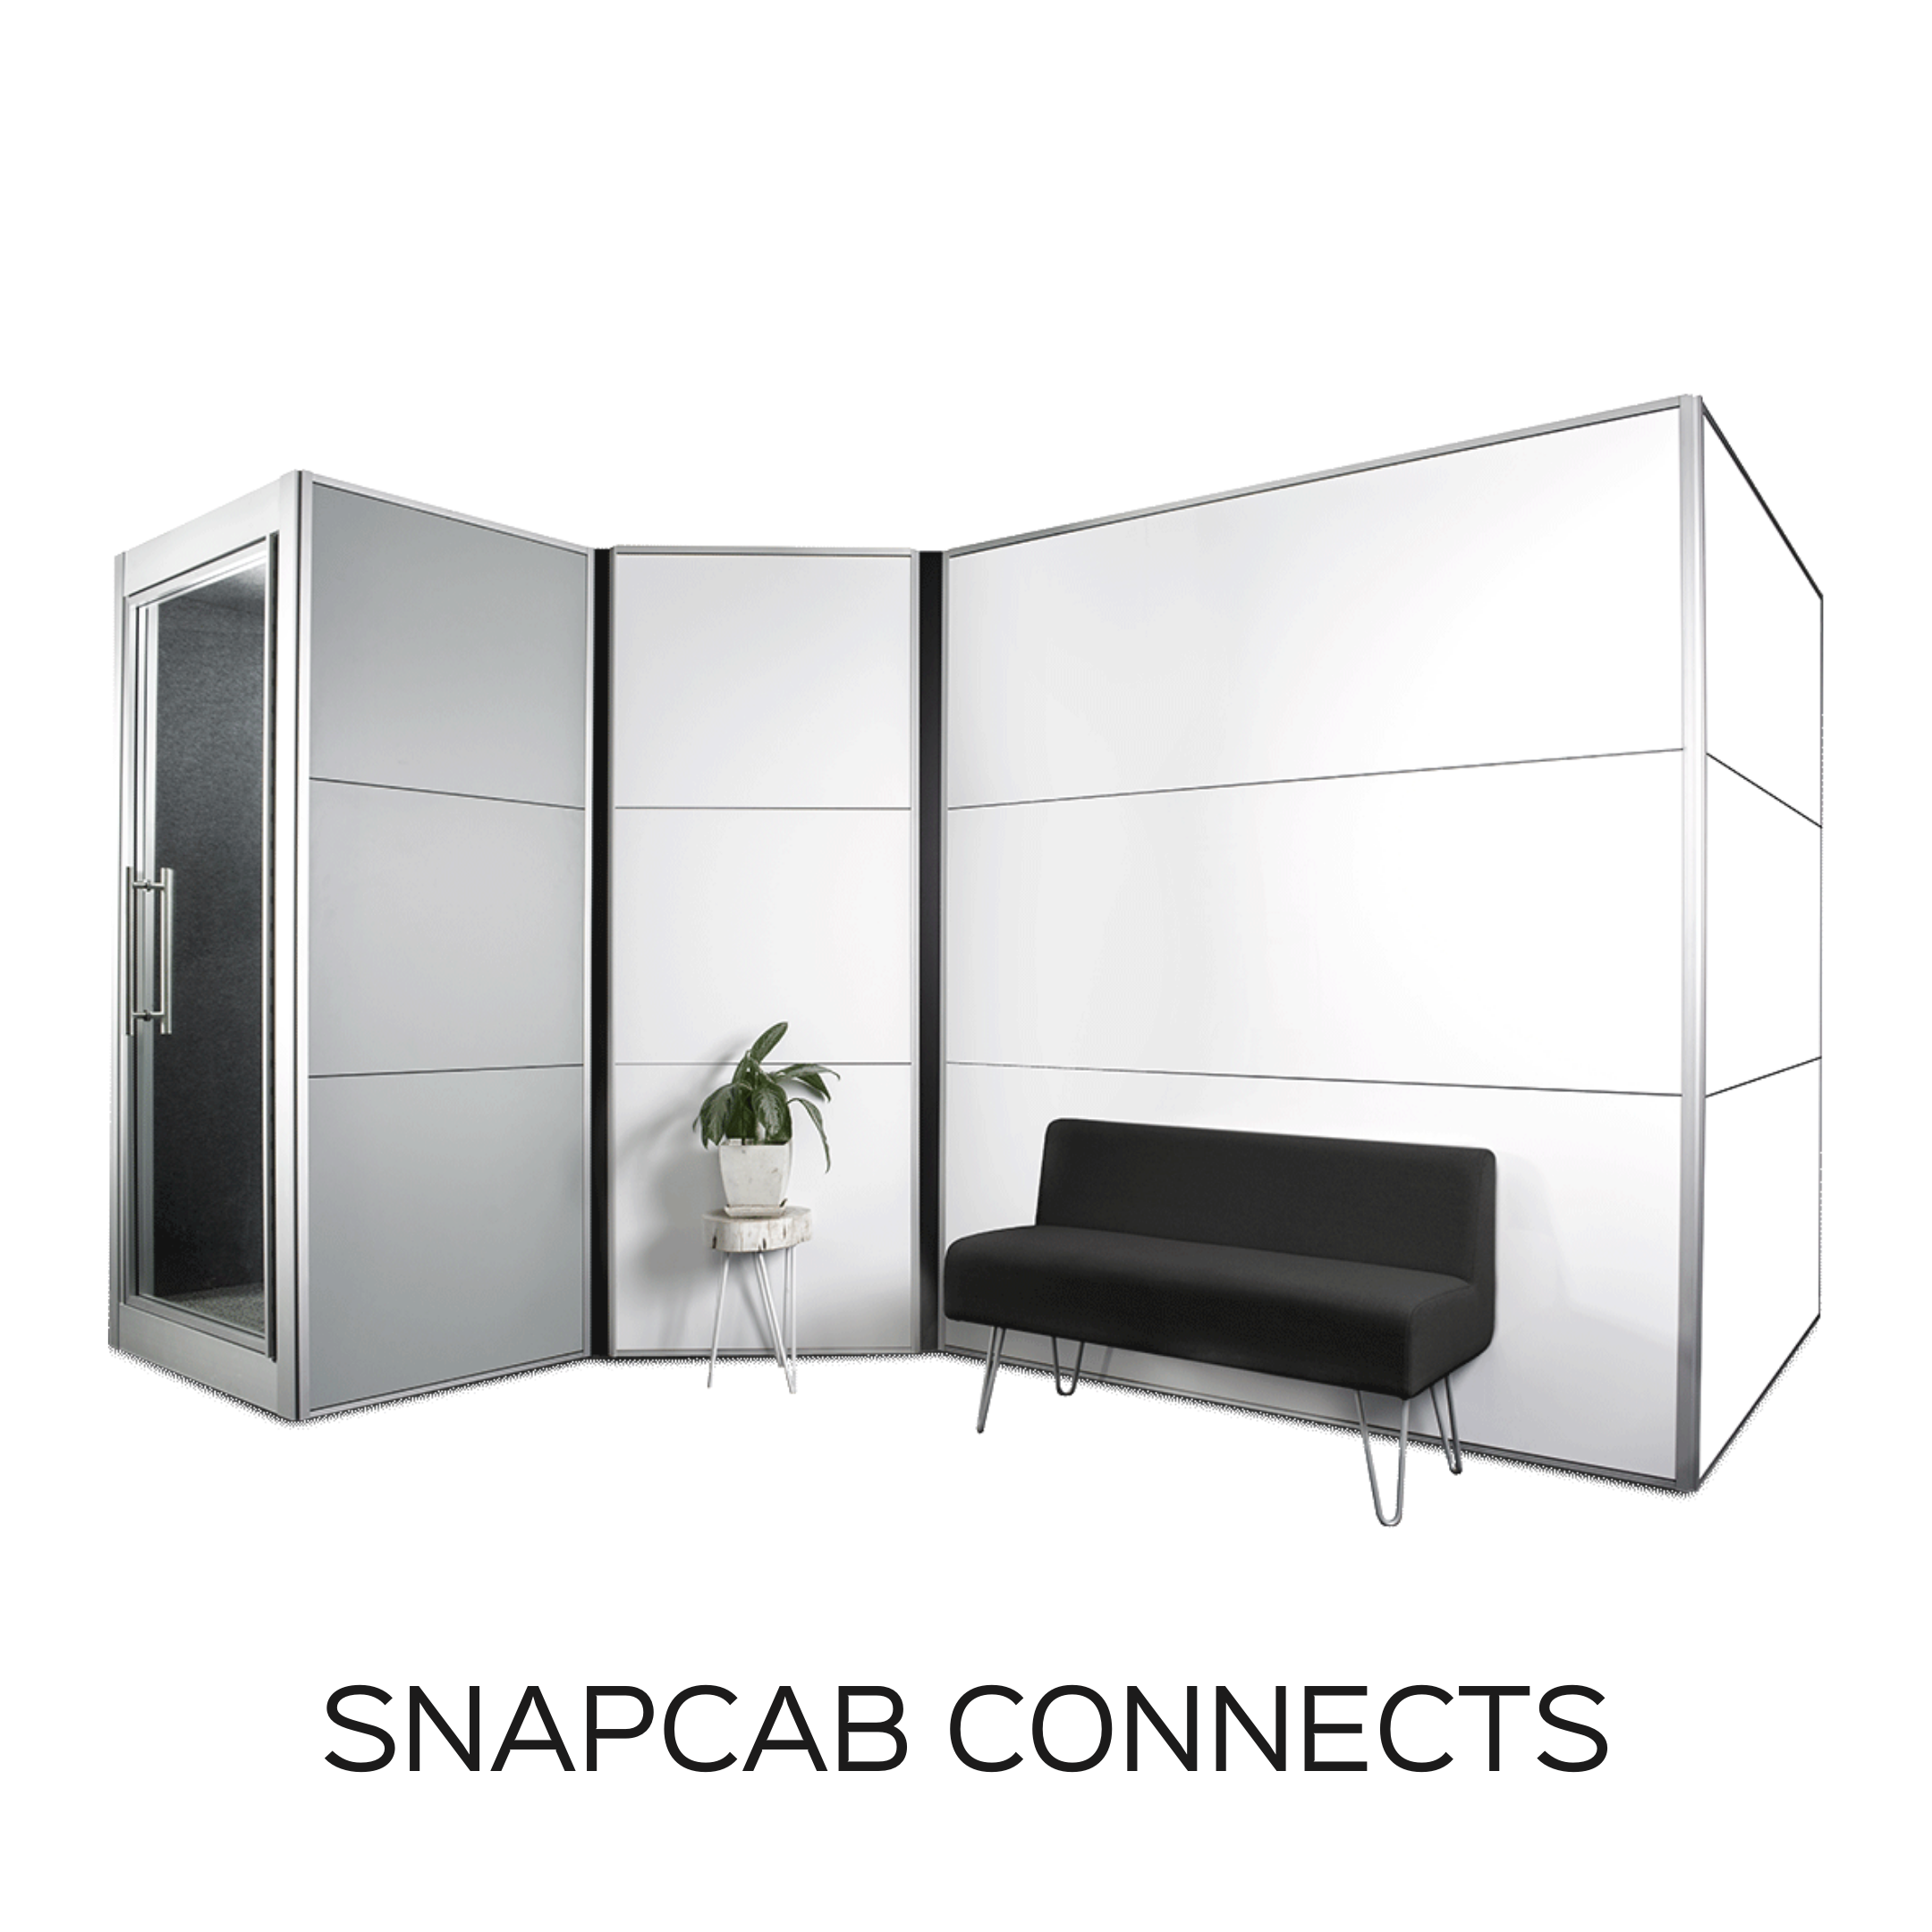 Open Office Privacy Walls - SnapCab Connects Walls